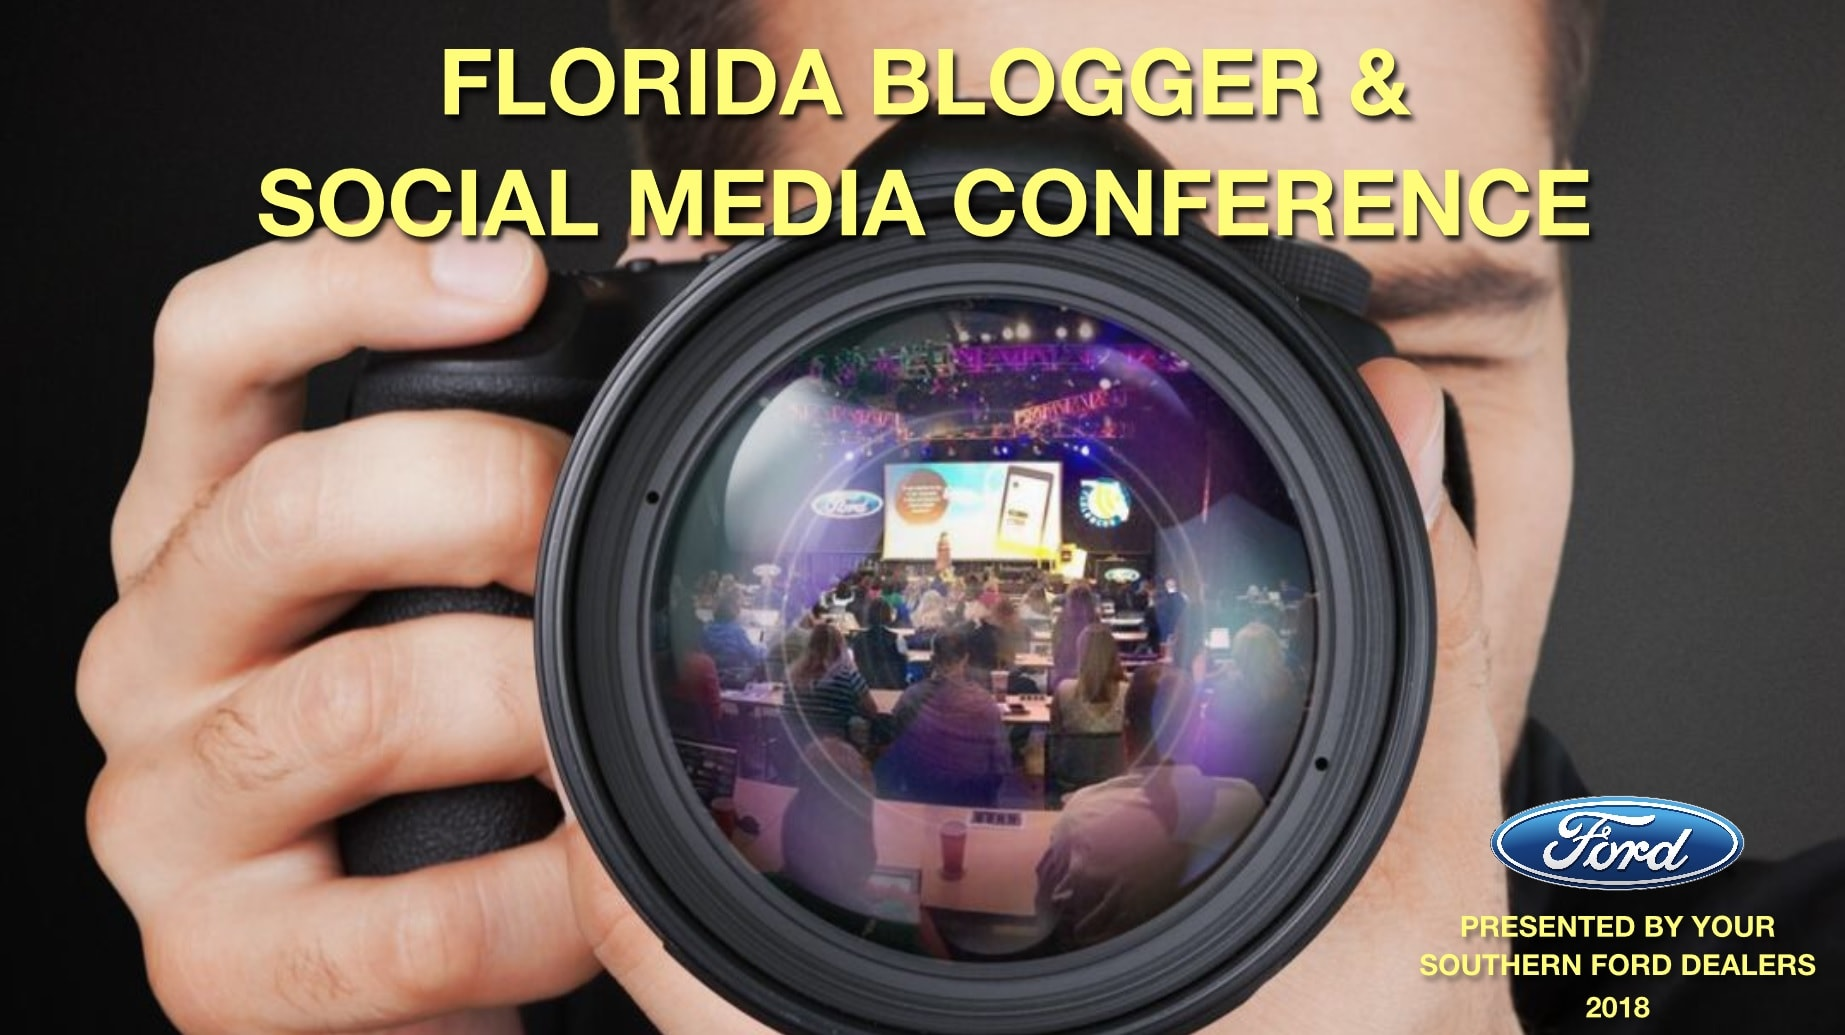 FL Blog Con - Florida Blogger and Social Media Conference